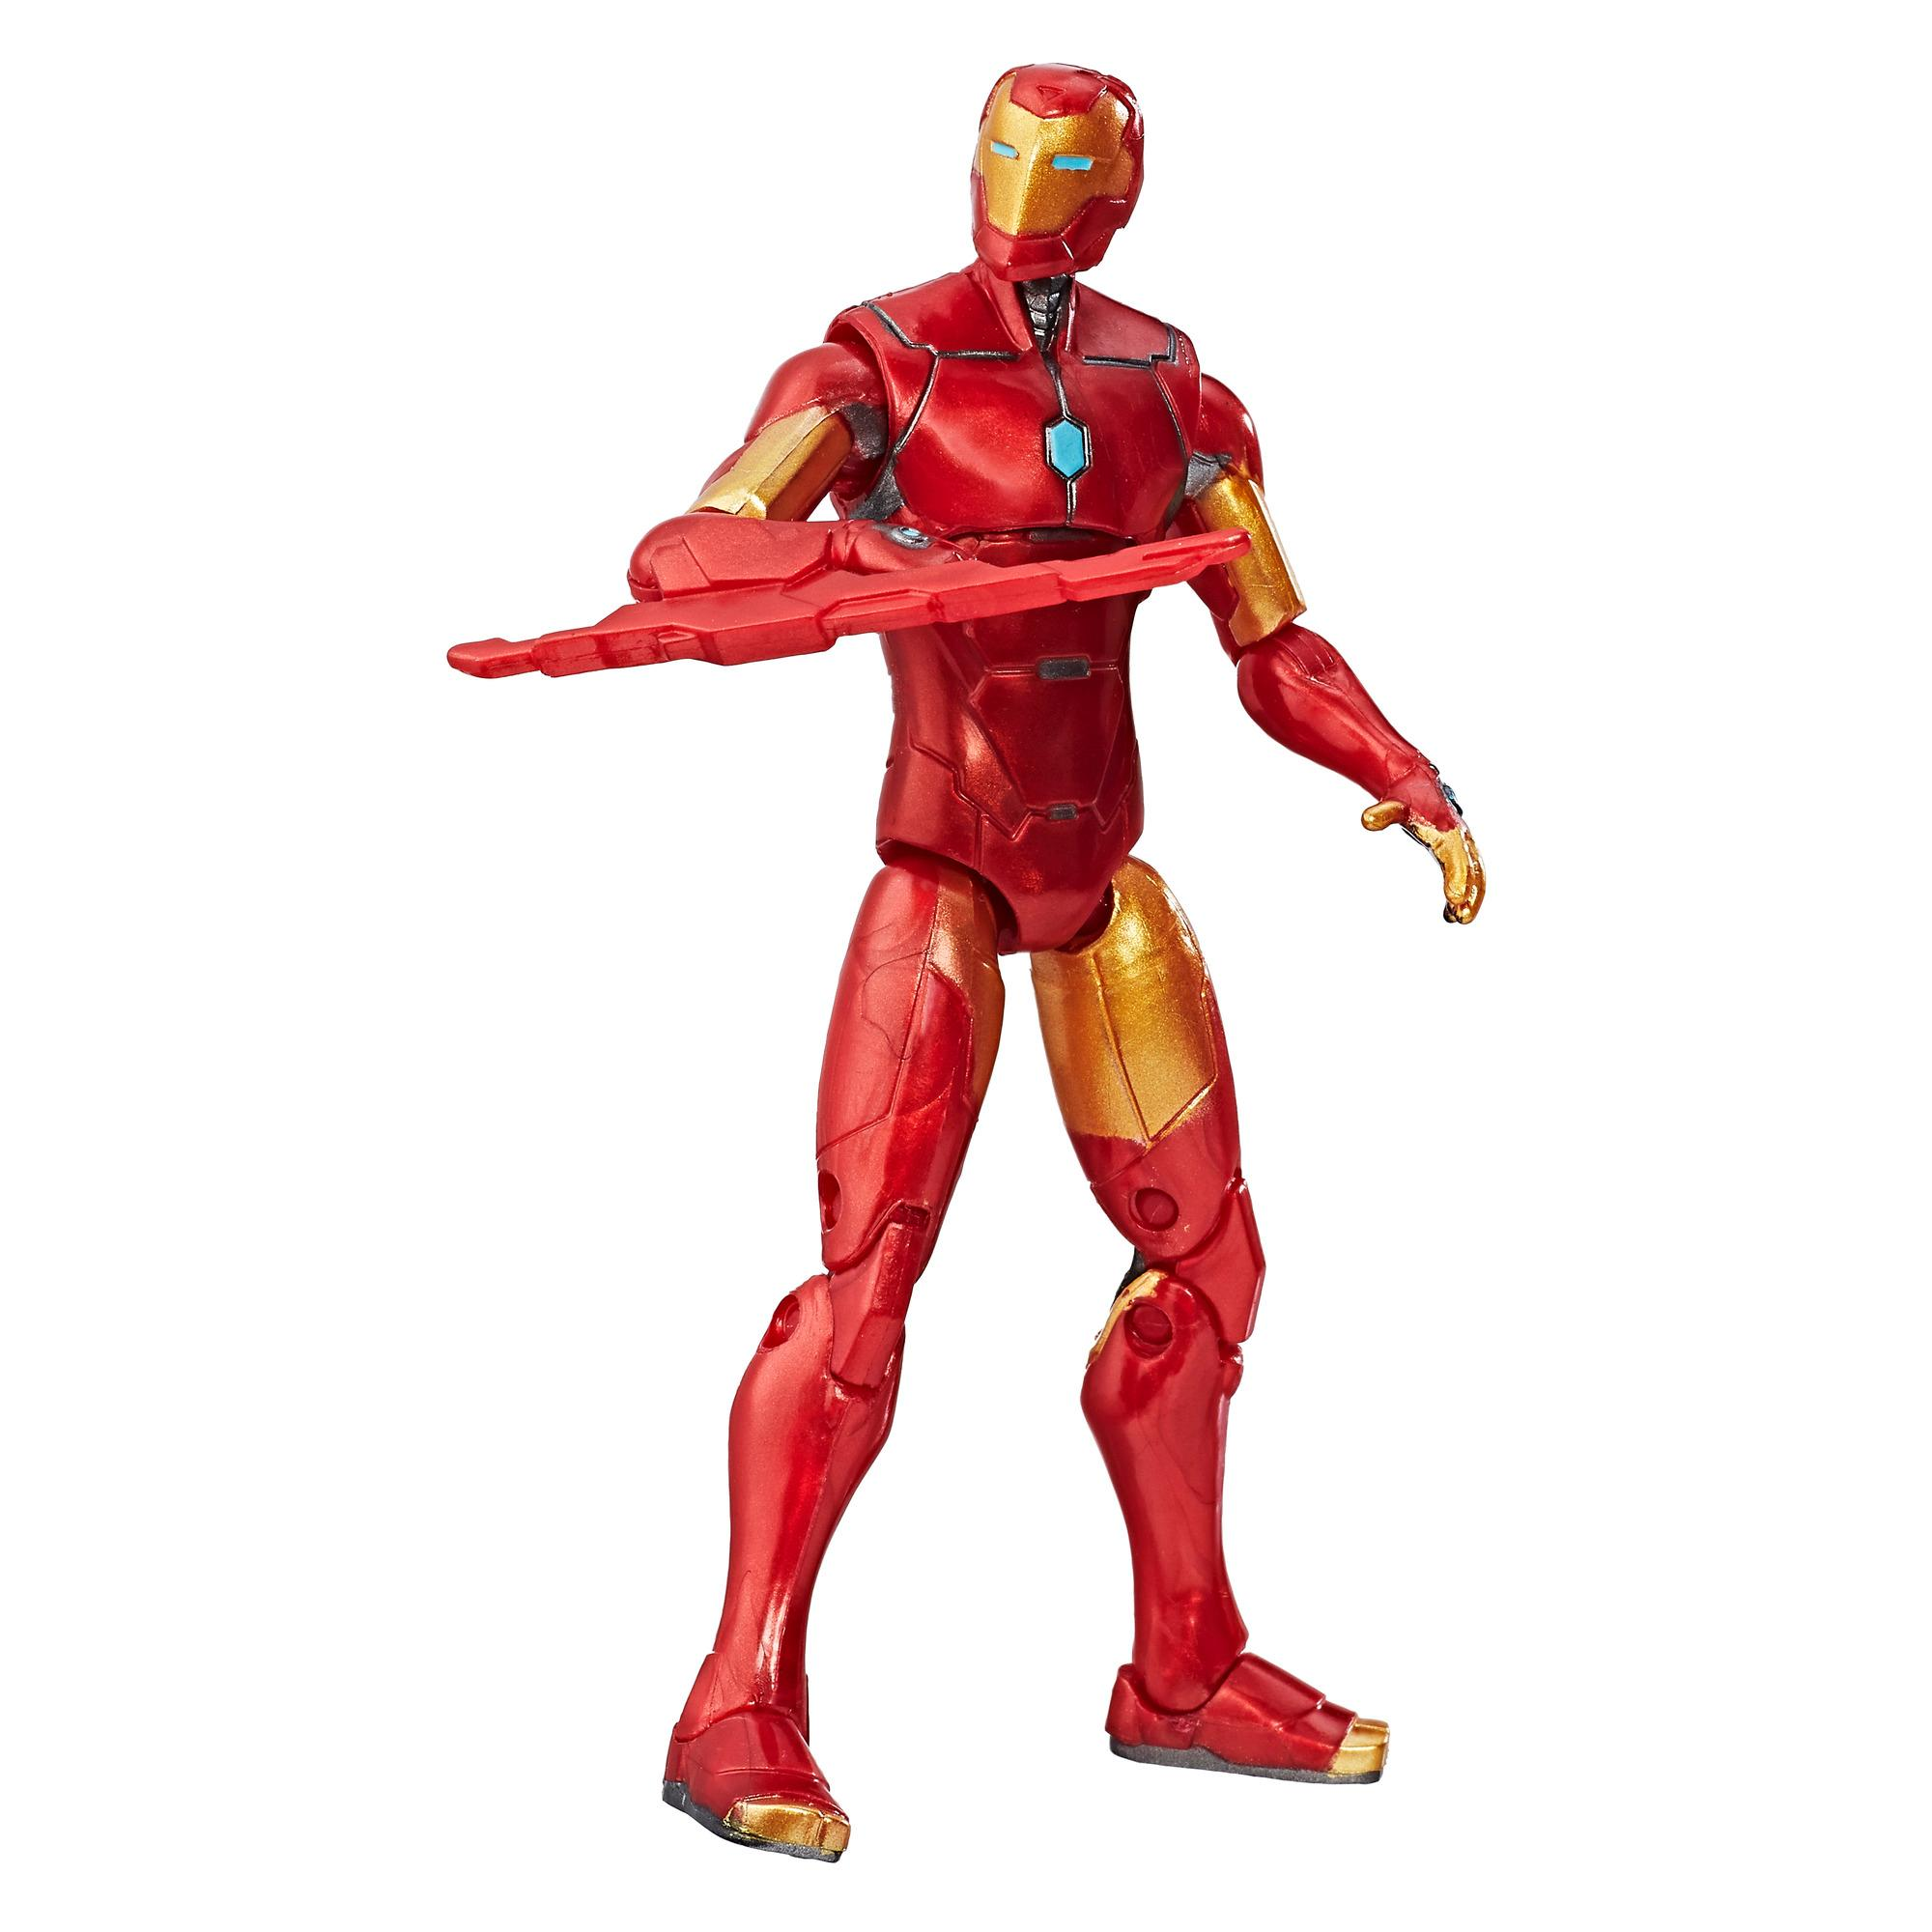 Marvel Legends Series 3.75-in Invincible Iron Man